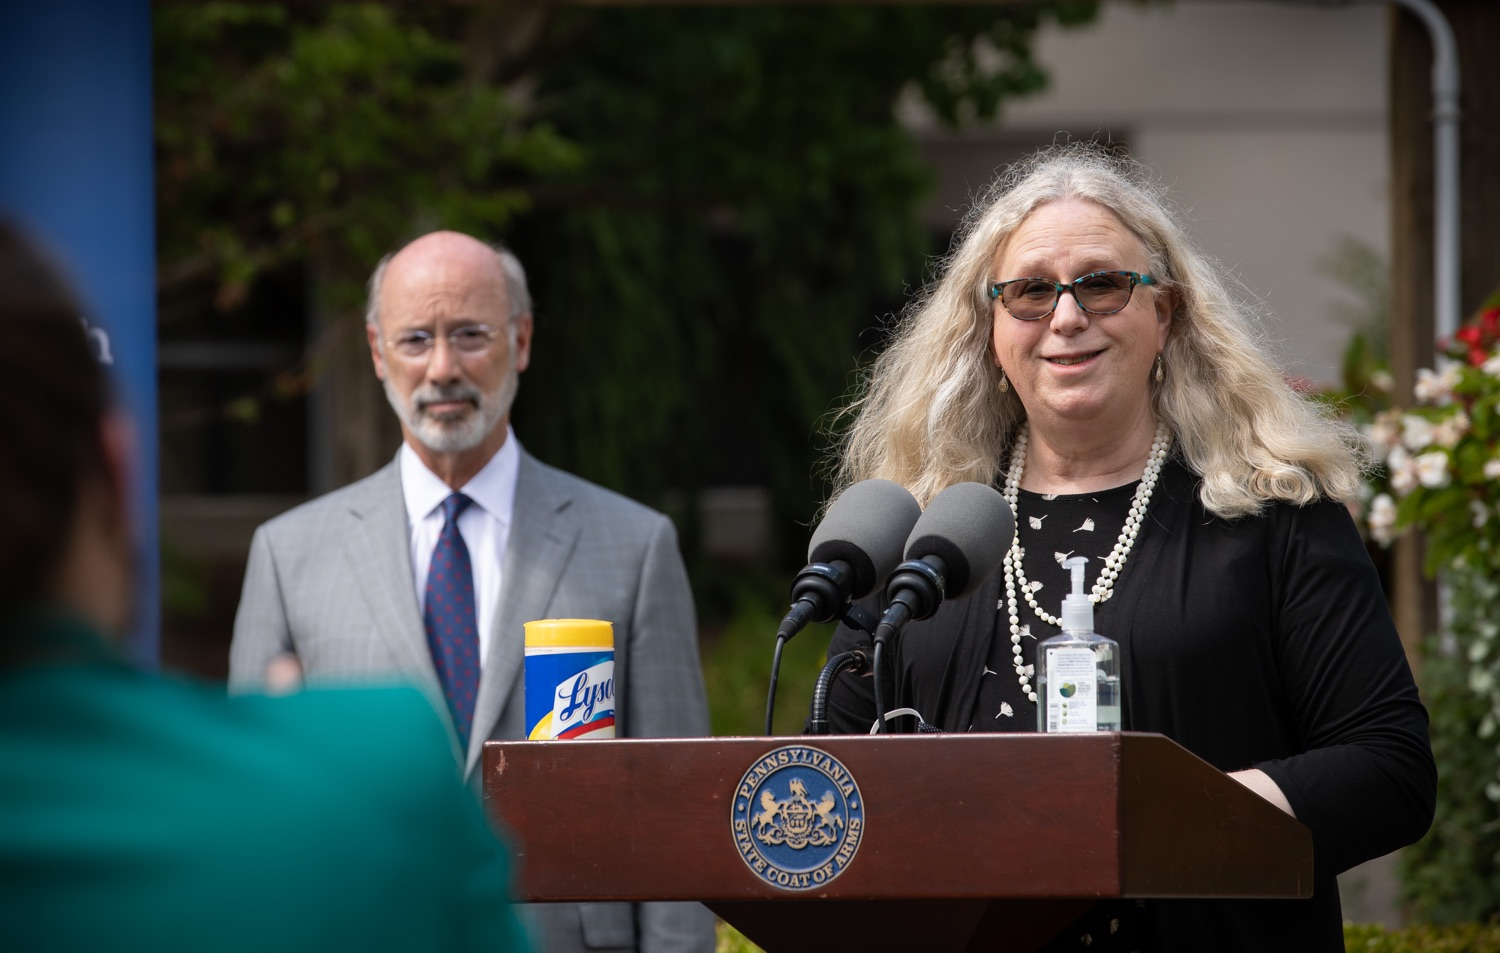 """<a href=""""https://filesource.wostreaming.net/commonwealthofpa/photo/18093_gov-healthcare_workers_dz_04.jpg"""" target=""""_blank"""">⇣Download Photo<br></a>Sec. of Health Dr. Rachel Levine answering questions from the press during her visit to Milton S. Hershey Medical Center. As the commonwealth continues its measured, phased reopening and COVID-19 case counts continue to decline, Governor Tom Wolf visited Penn State Milton S. Hershey Medical Center today to thank staff and learn more about how the facility is handling the pandemic and preparing for a possible resurgence in the fall.  Harrisburg, PA  June 24, 2020"""